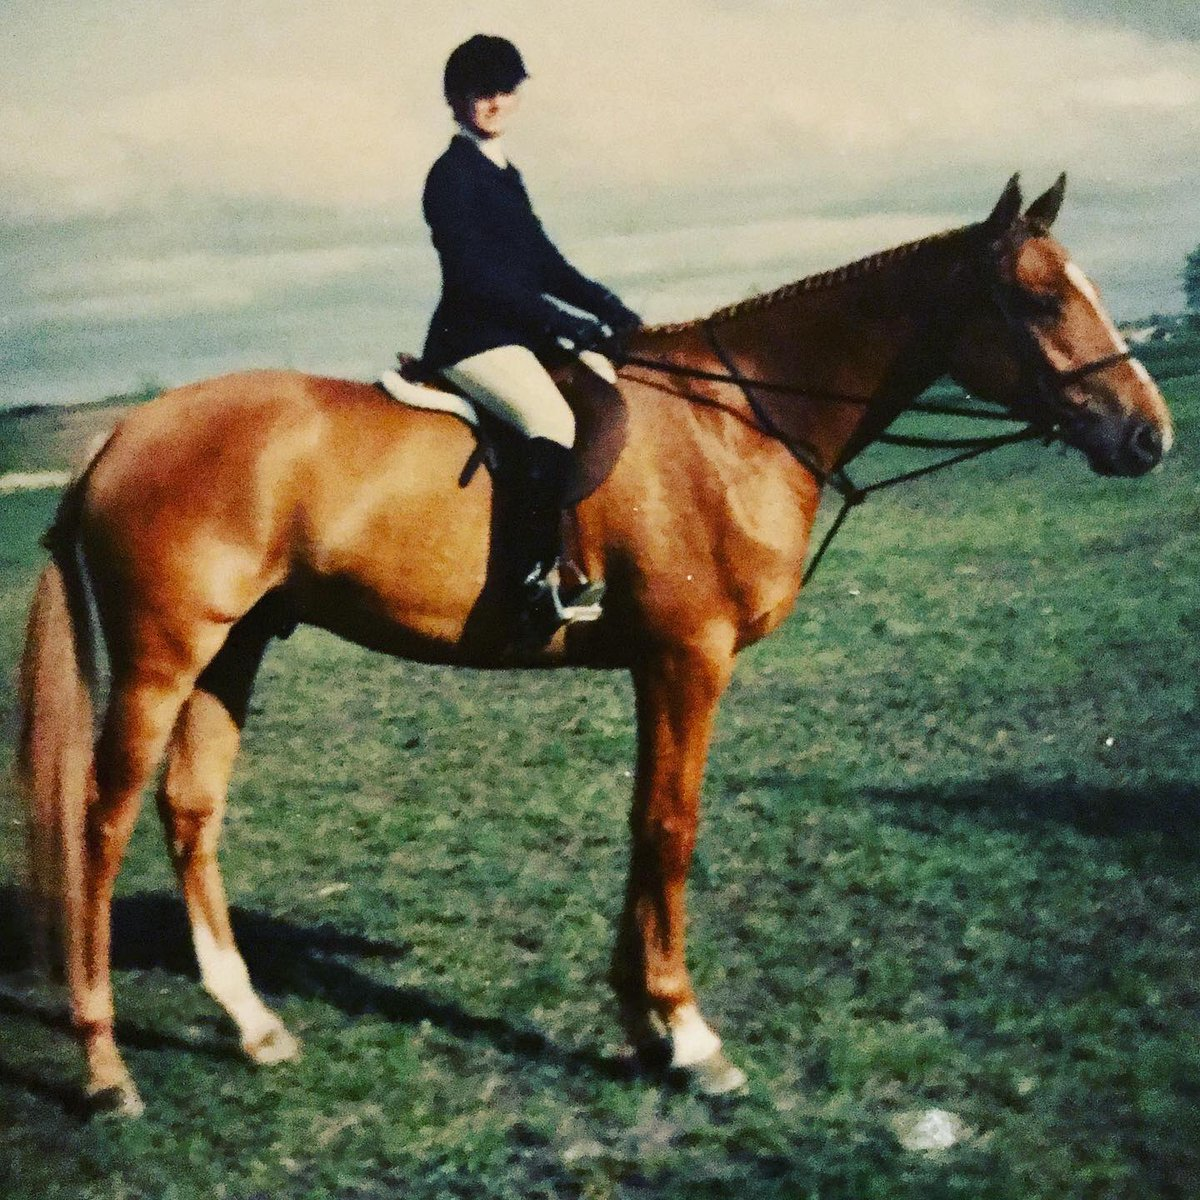 #TBT ...that's me at 14! On my second horse Skipper (show name 'Easy Does It') he was 4 and this was our first show together in Red Deer...we were Childrens Champions #horselove #showjumping pic.twitter.com/3qRYc6l0od